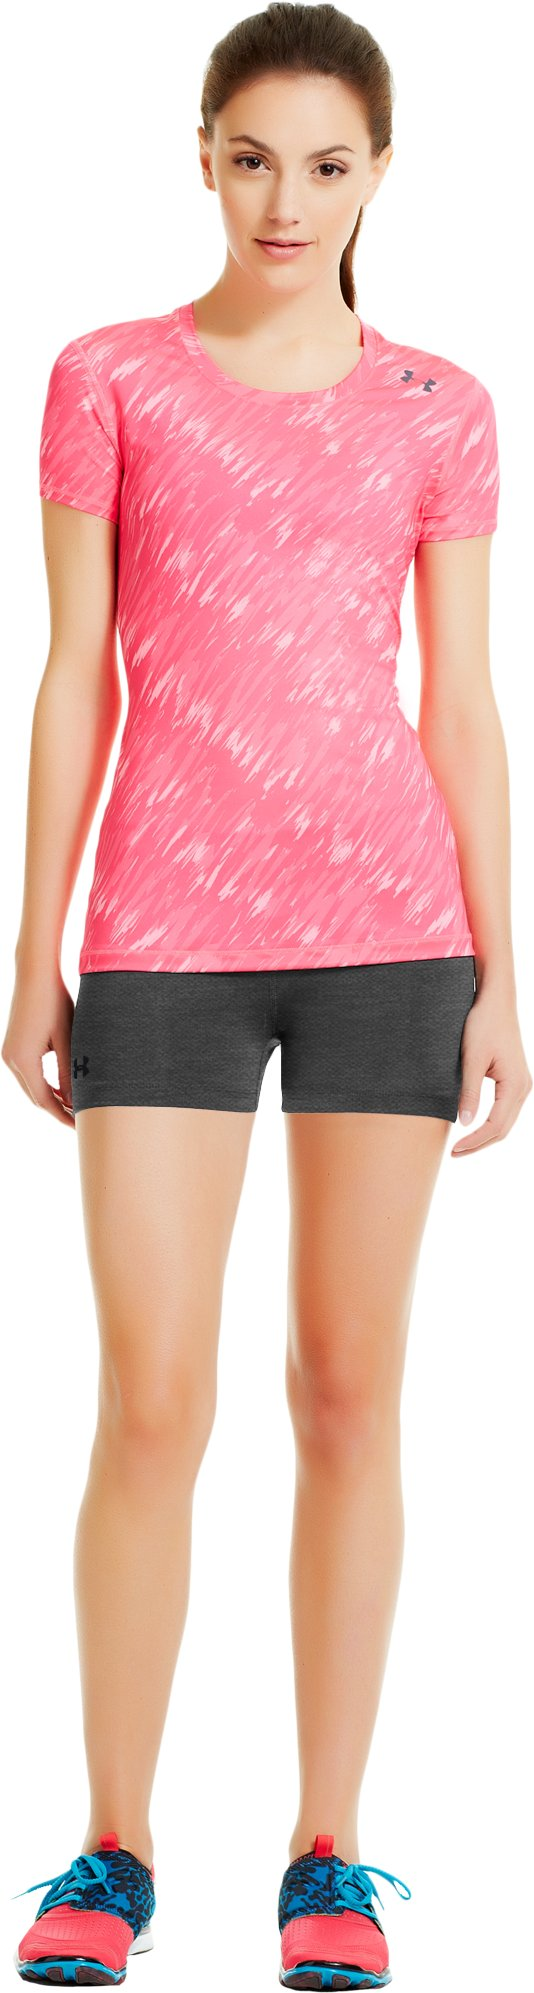 "Women's HeatGear® Sonic 2.5"" Shorty, Carbon Heather, Front"